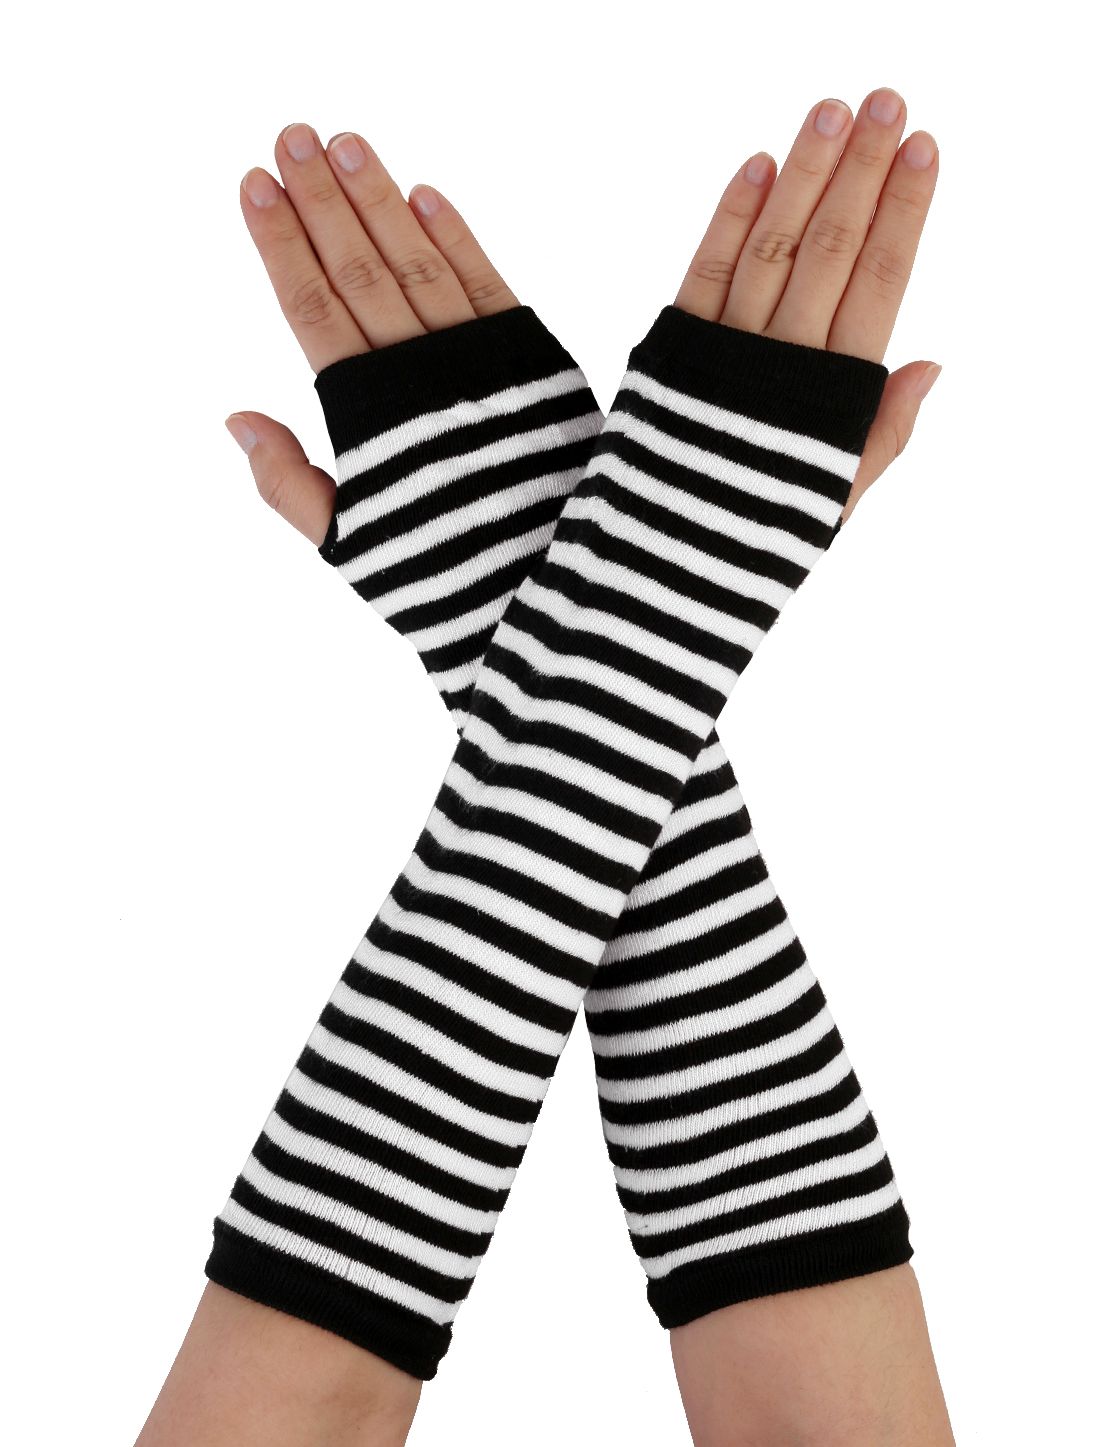 Winter Warm Black White Striped Long Fingerless Gloves